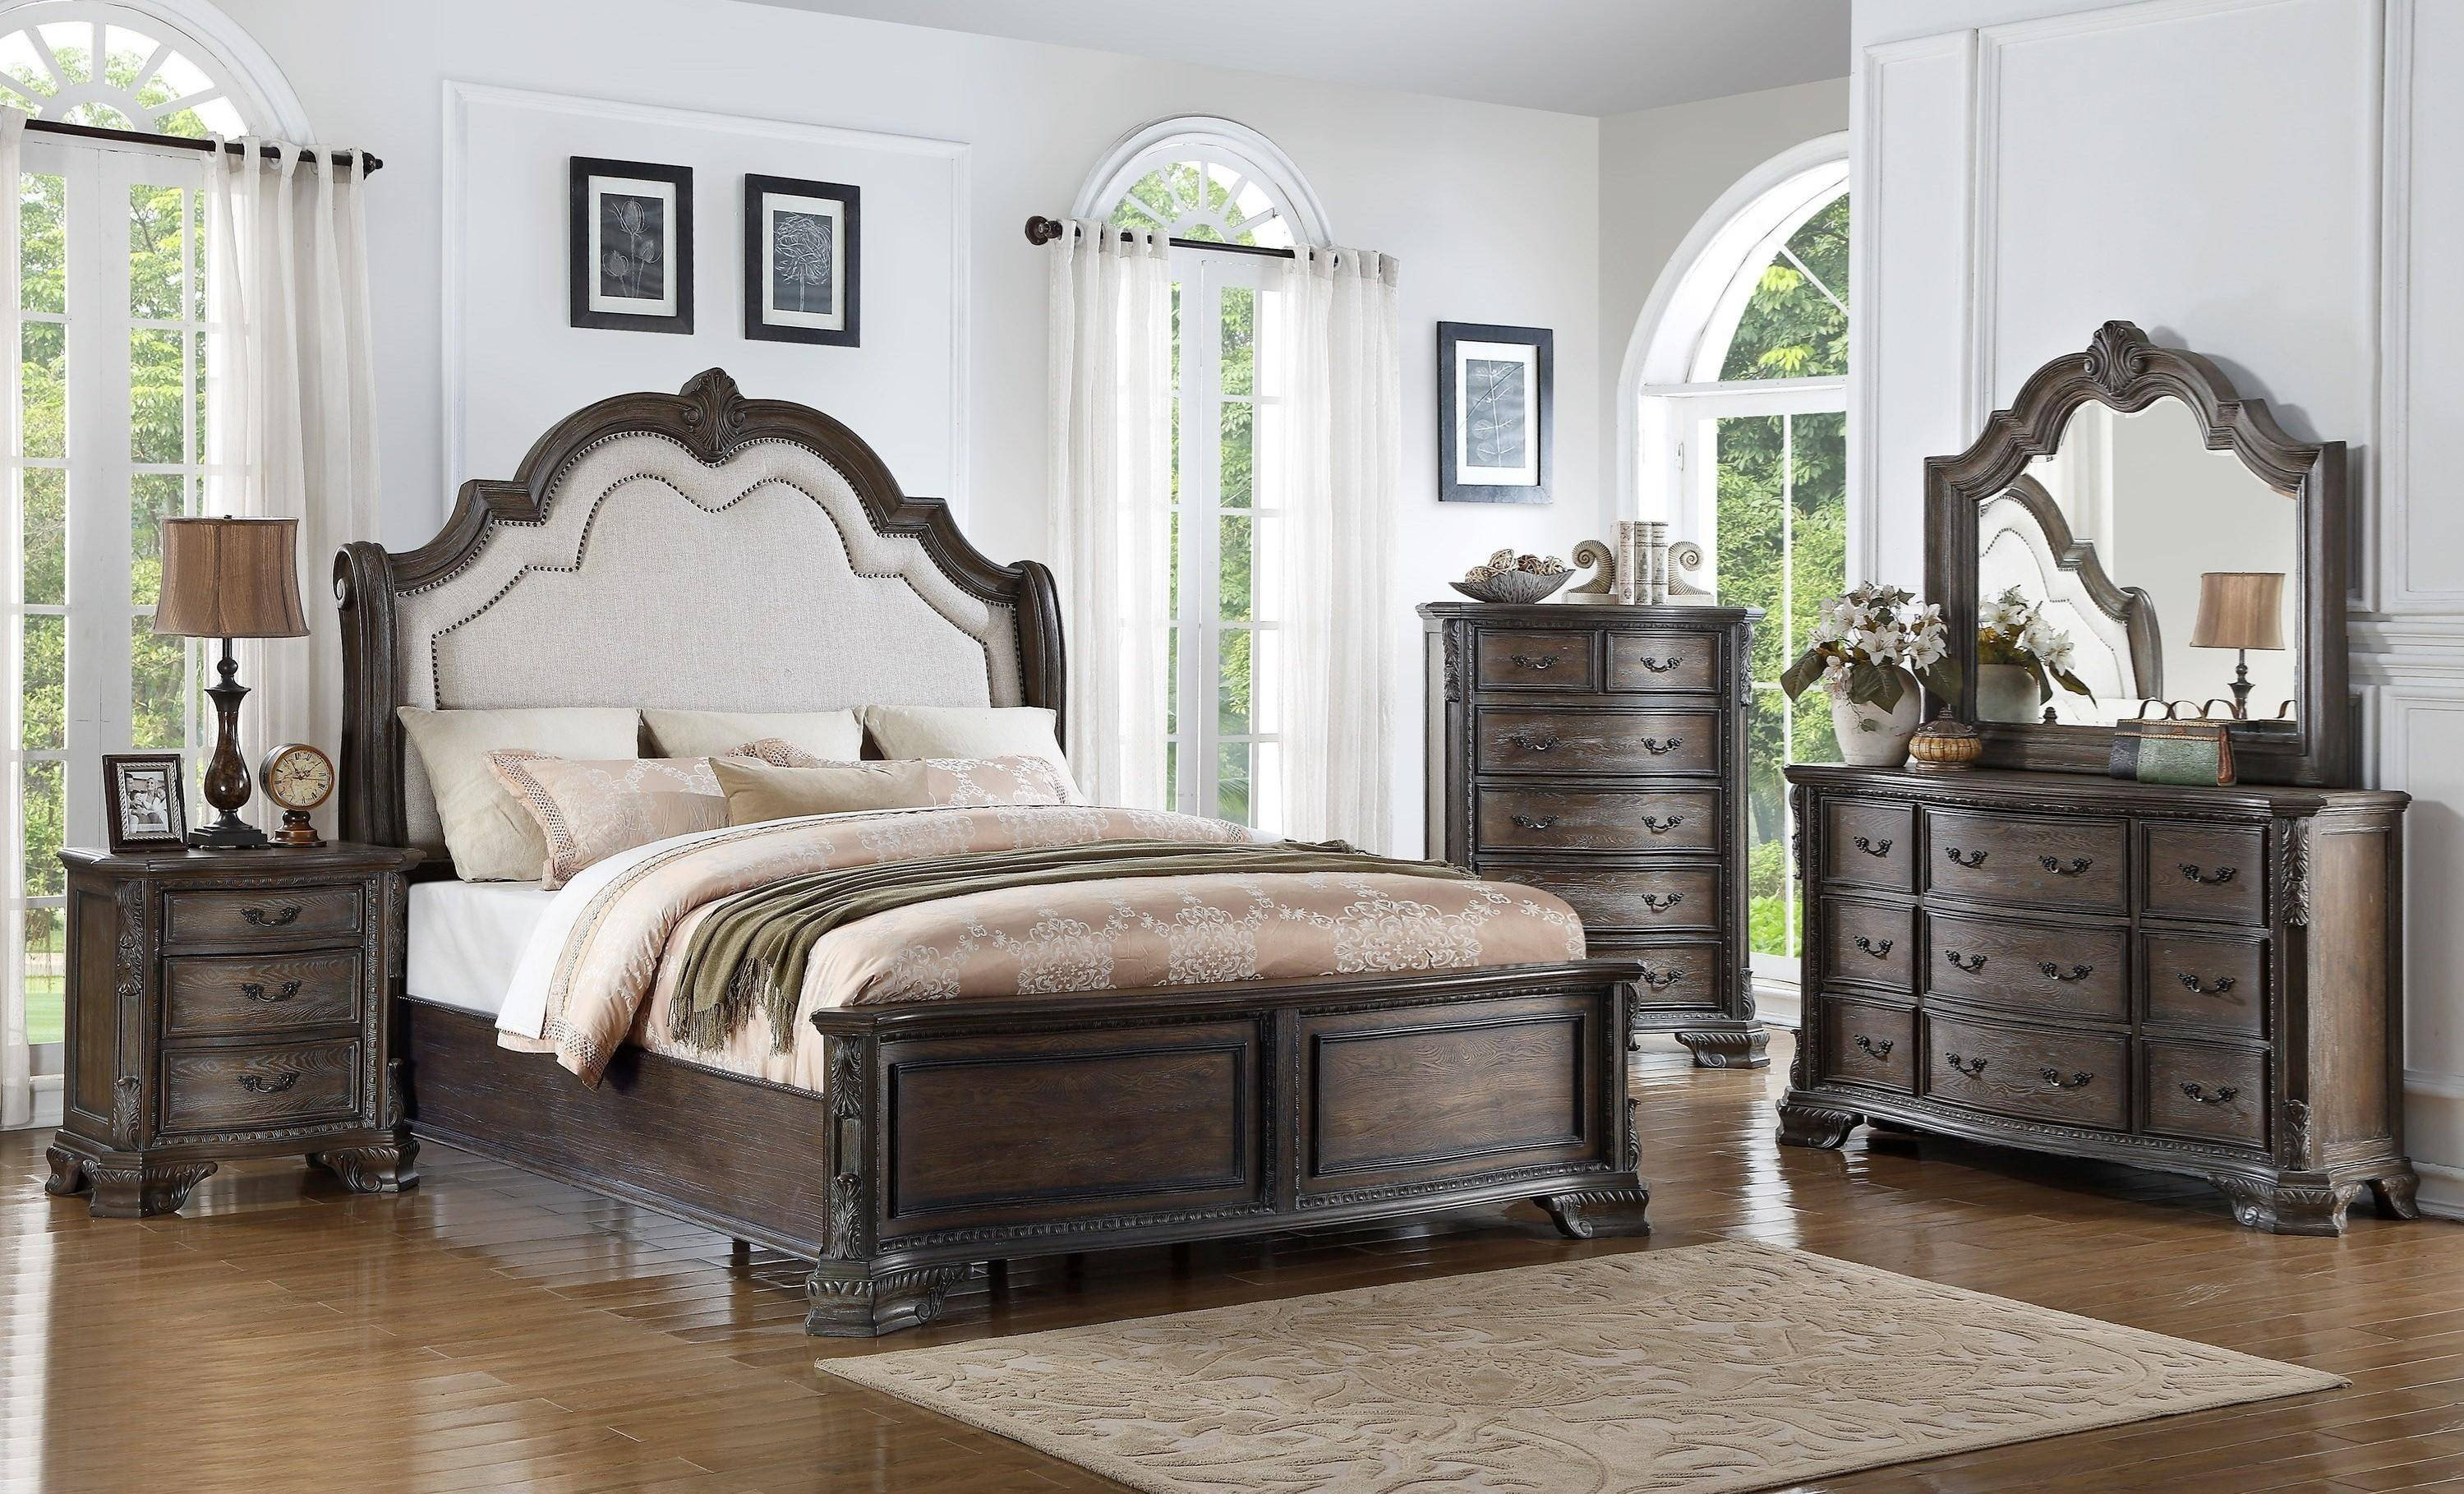 King Bedroom Furniture Set Elegant Crown Mark B1120 Sheffield Queen Panel Bed In Gray Fabric